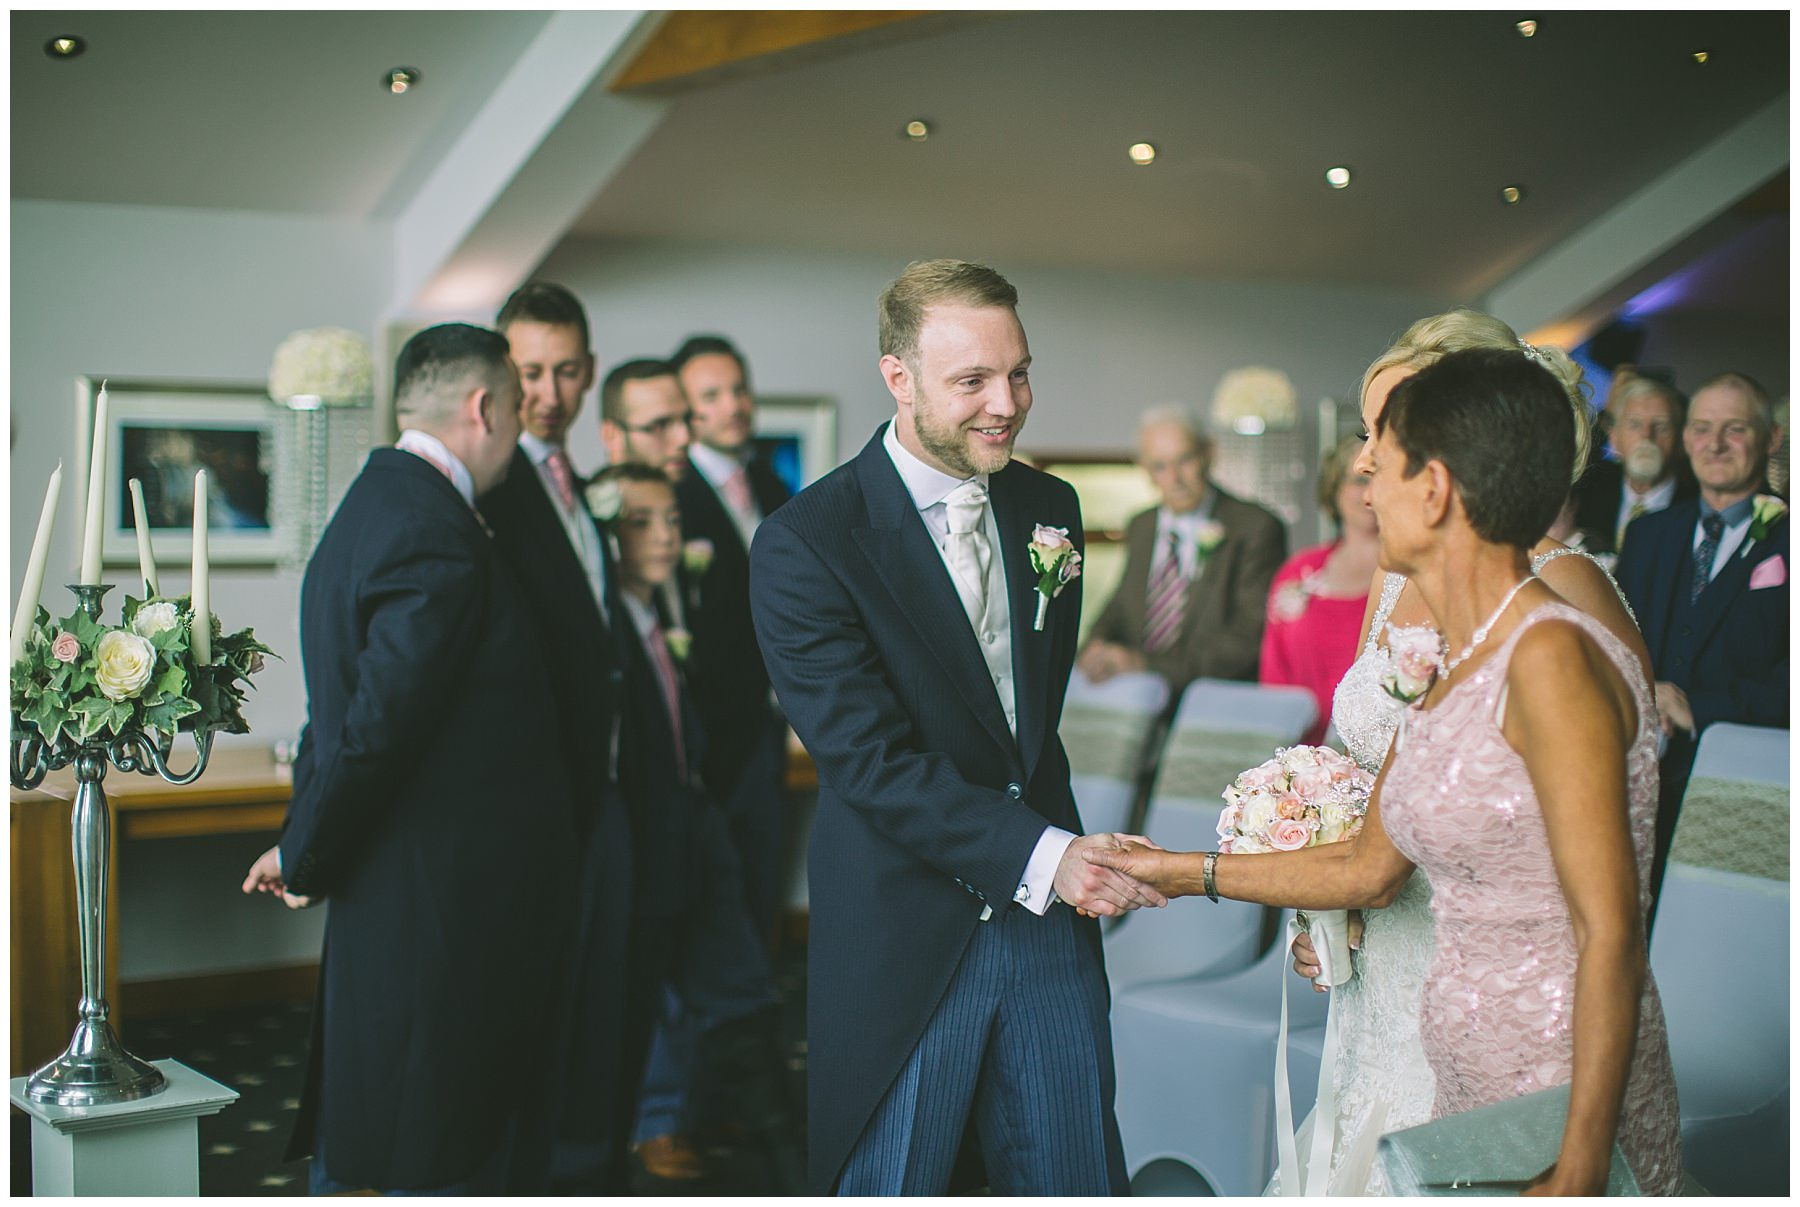 Groom Shakes hands with mother of the bride